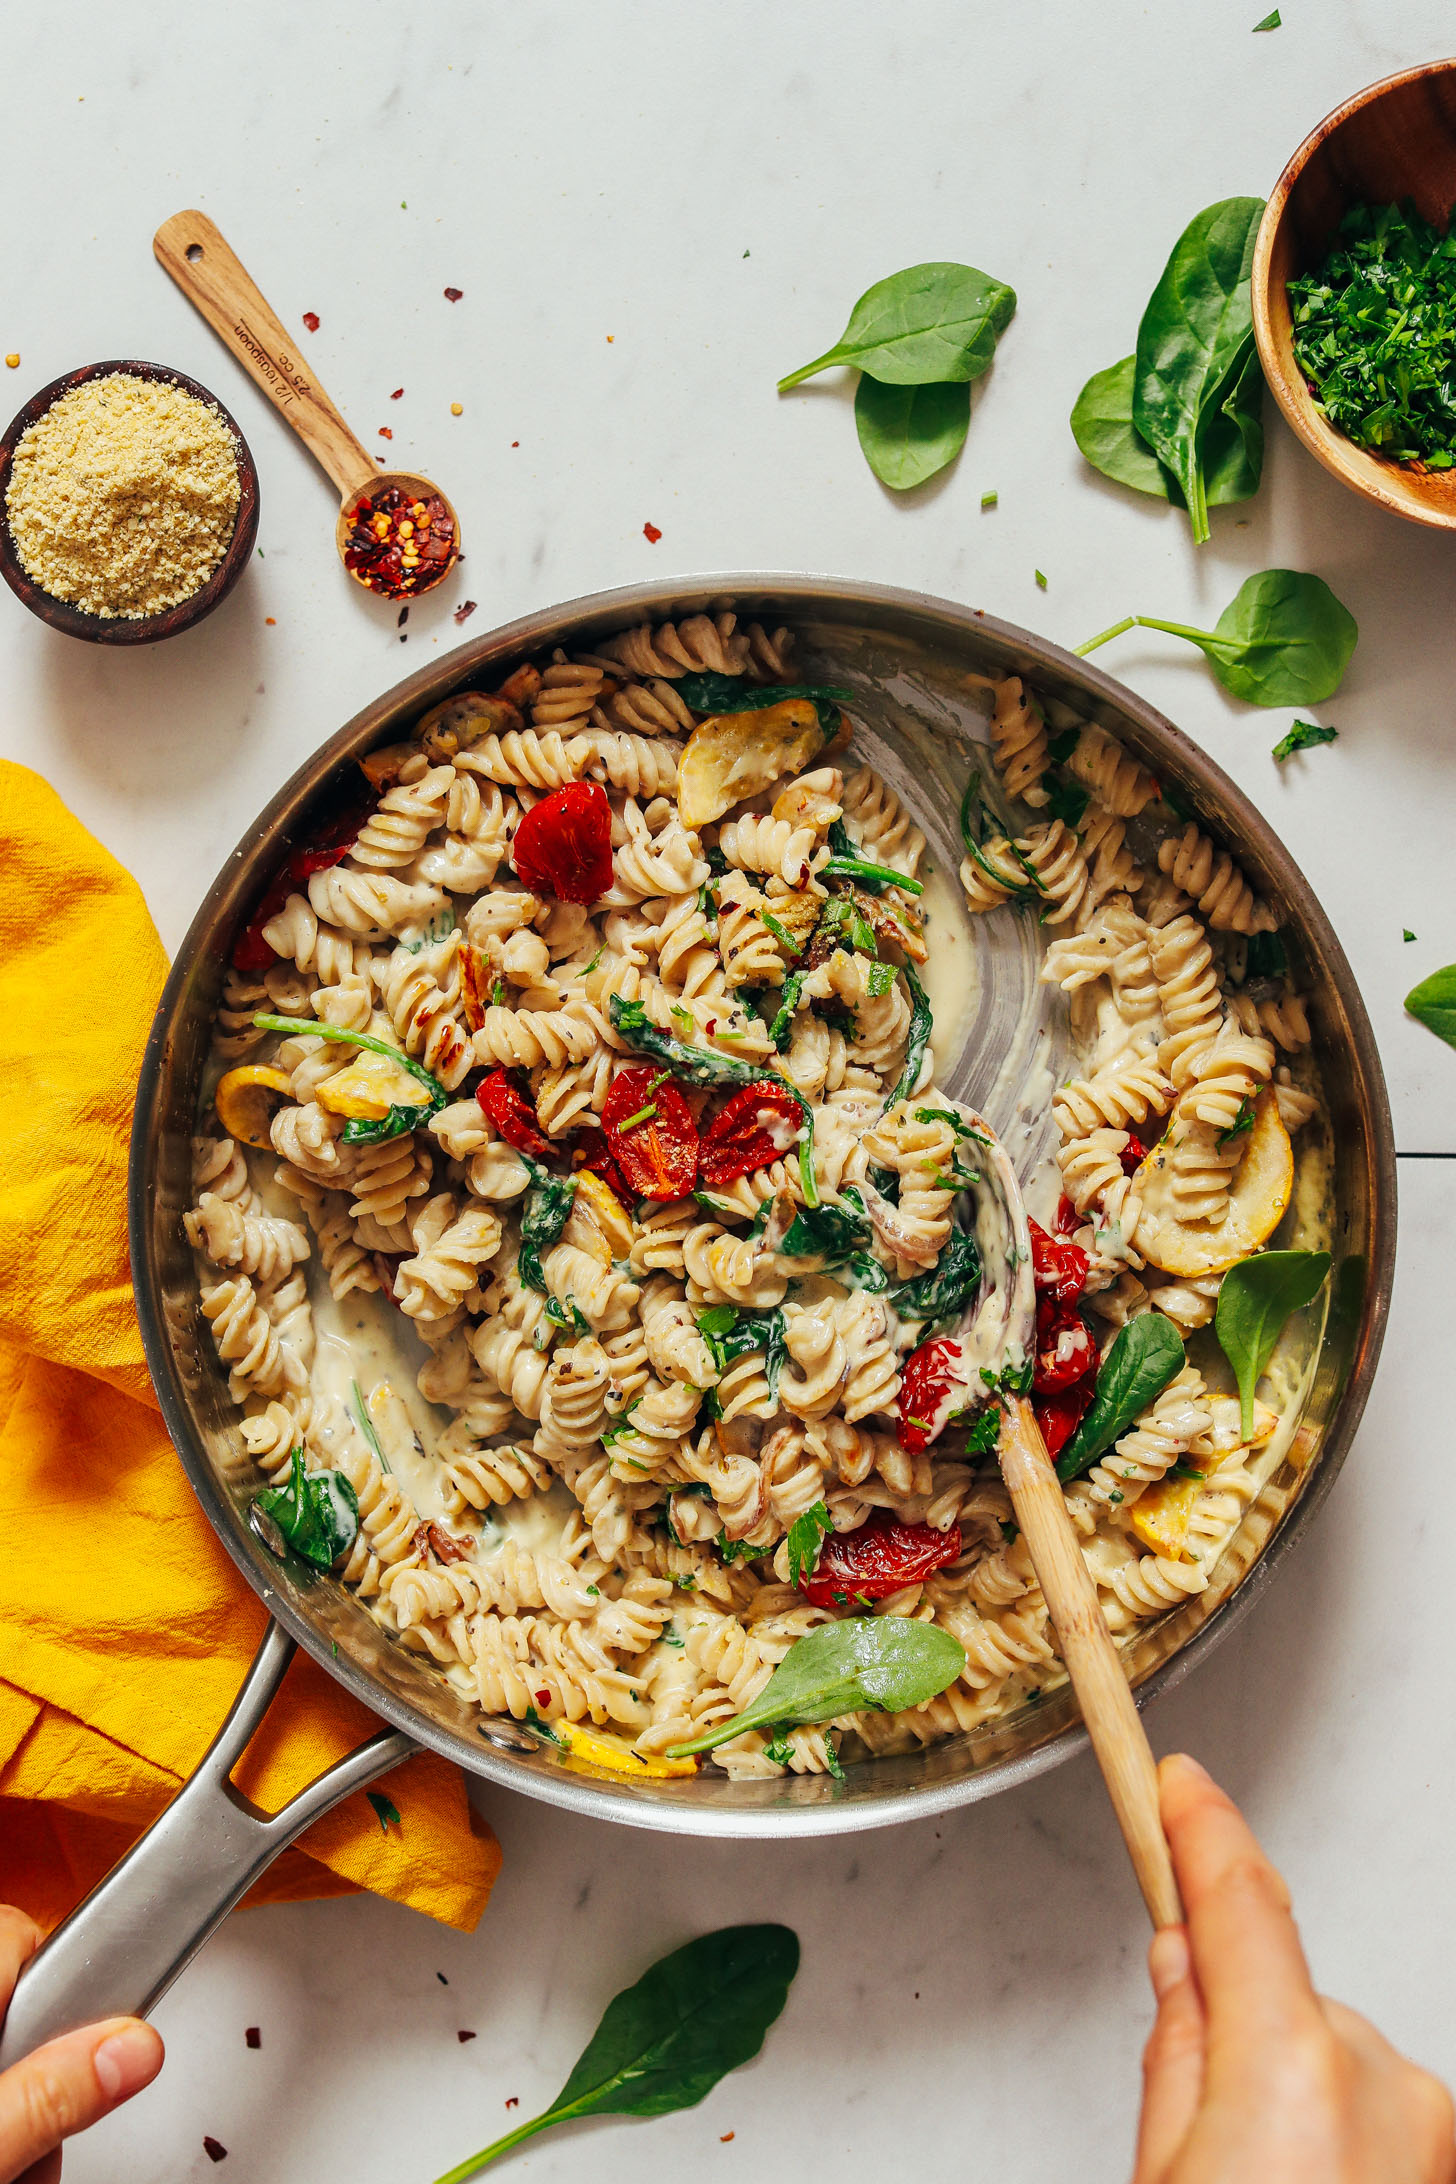 Using a wooden spoon to stir a pan of Creamy Vegan White Pasta with Summer Vegetables